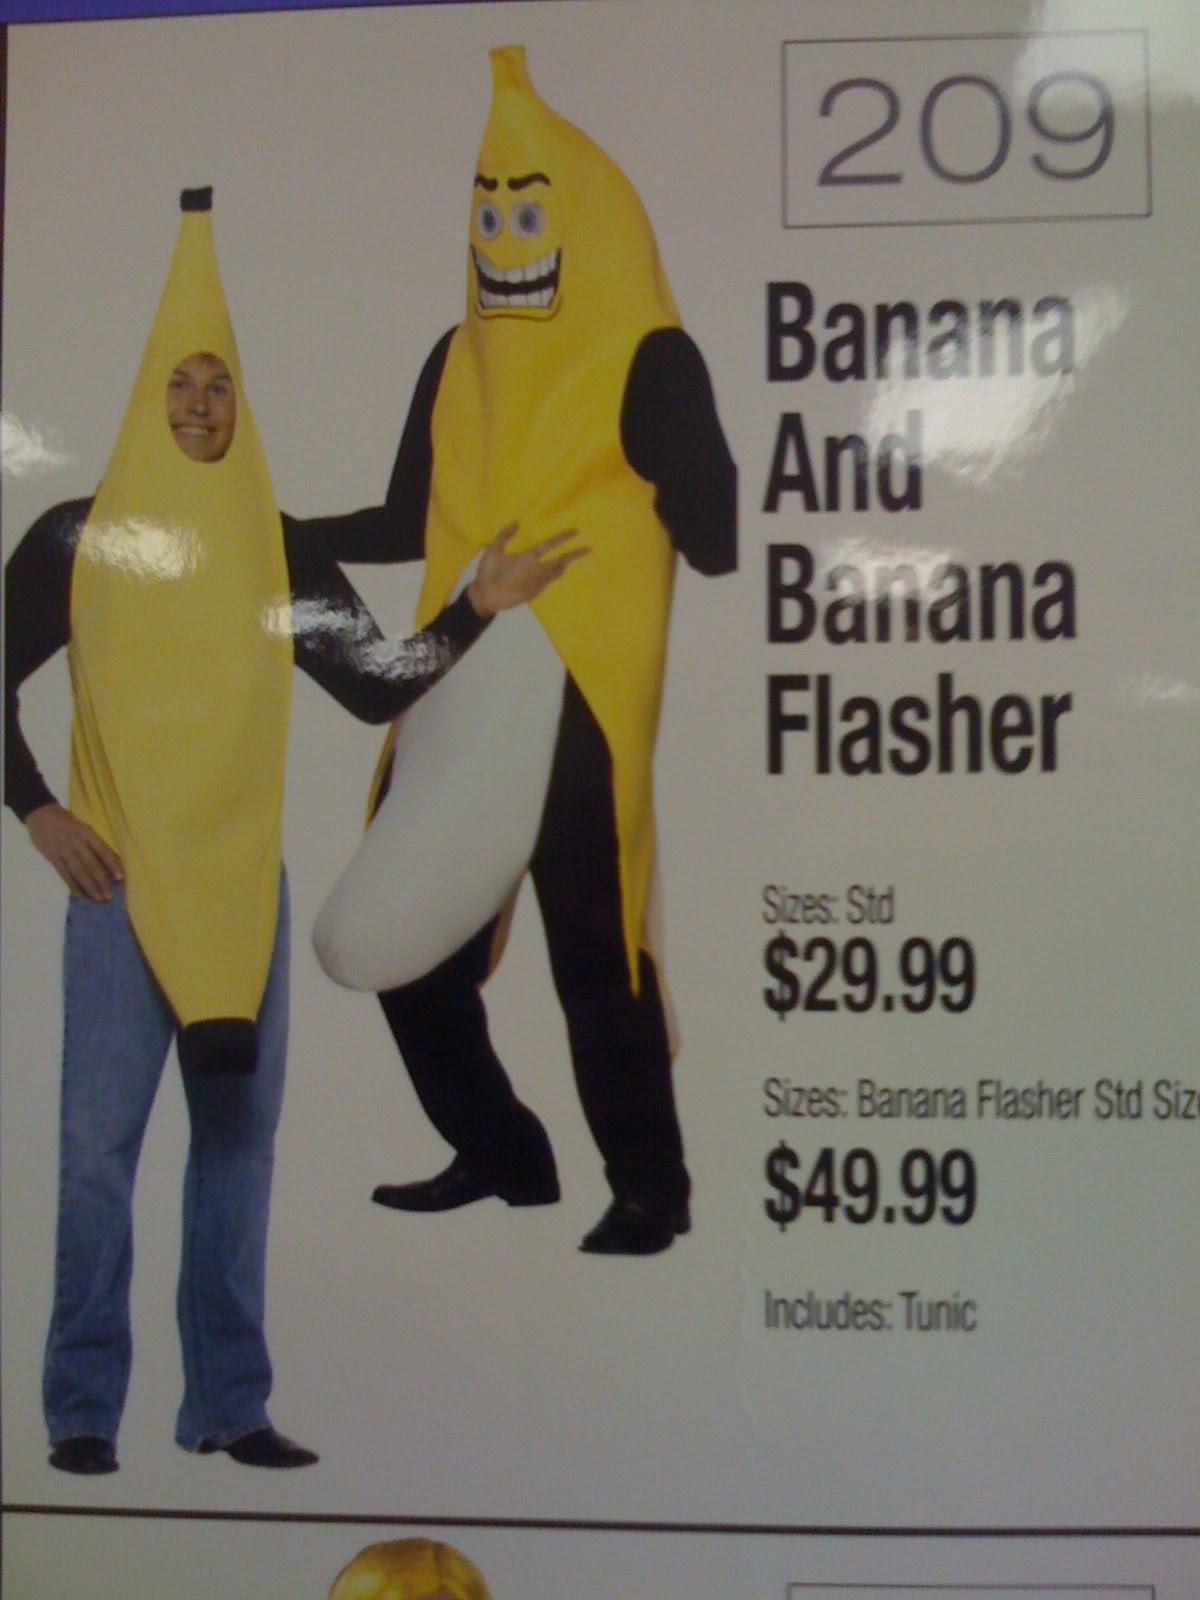 Halloween-Costume-Banana-Flasher-Dirty